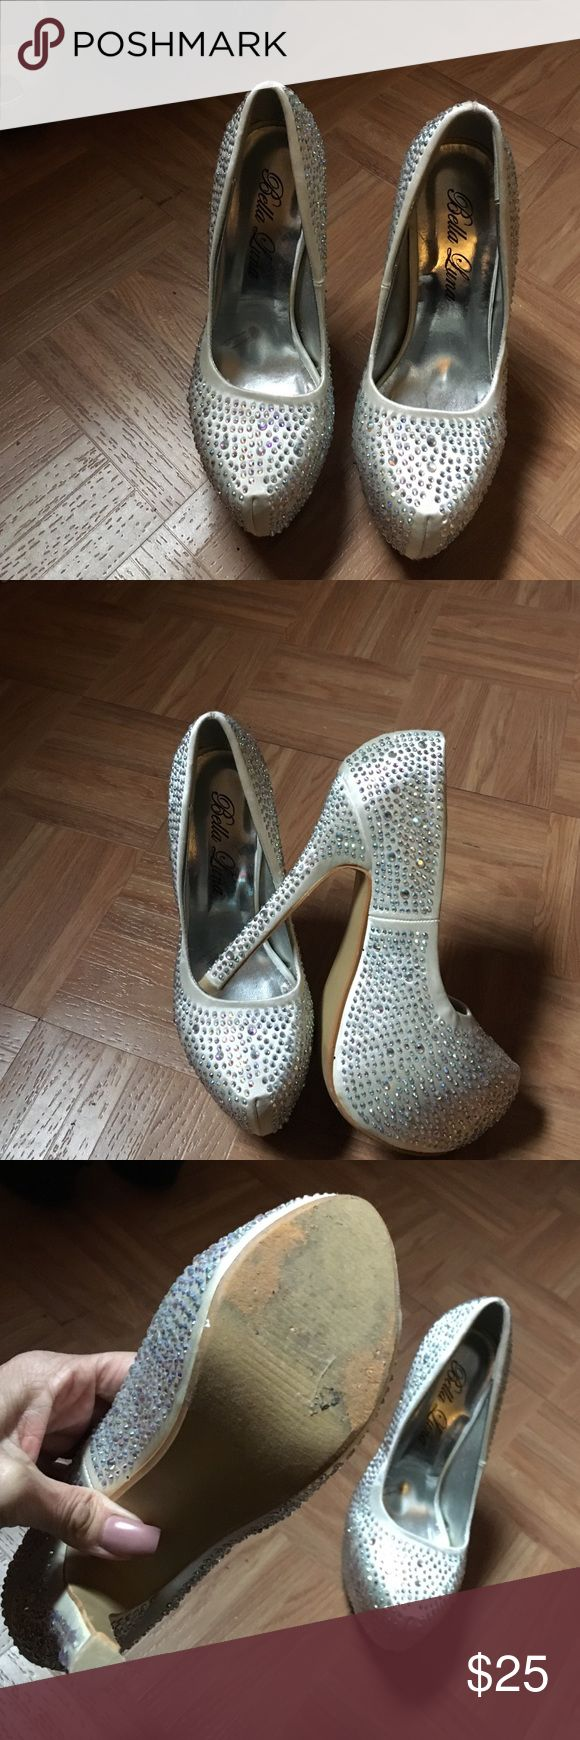 Bella Luna shoes Silver platforms covered in rhinestones Shoes Platforms